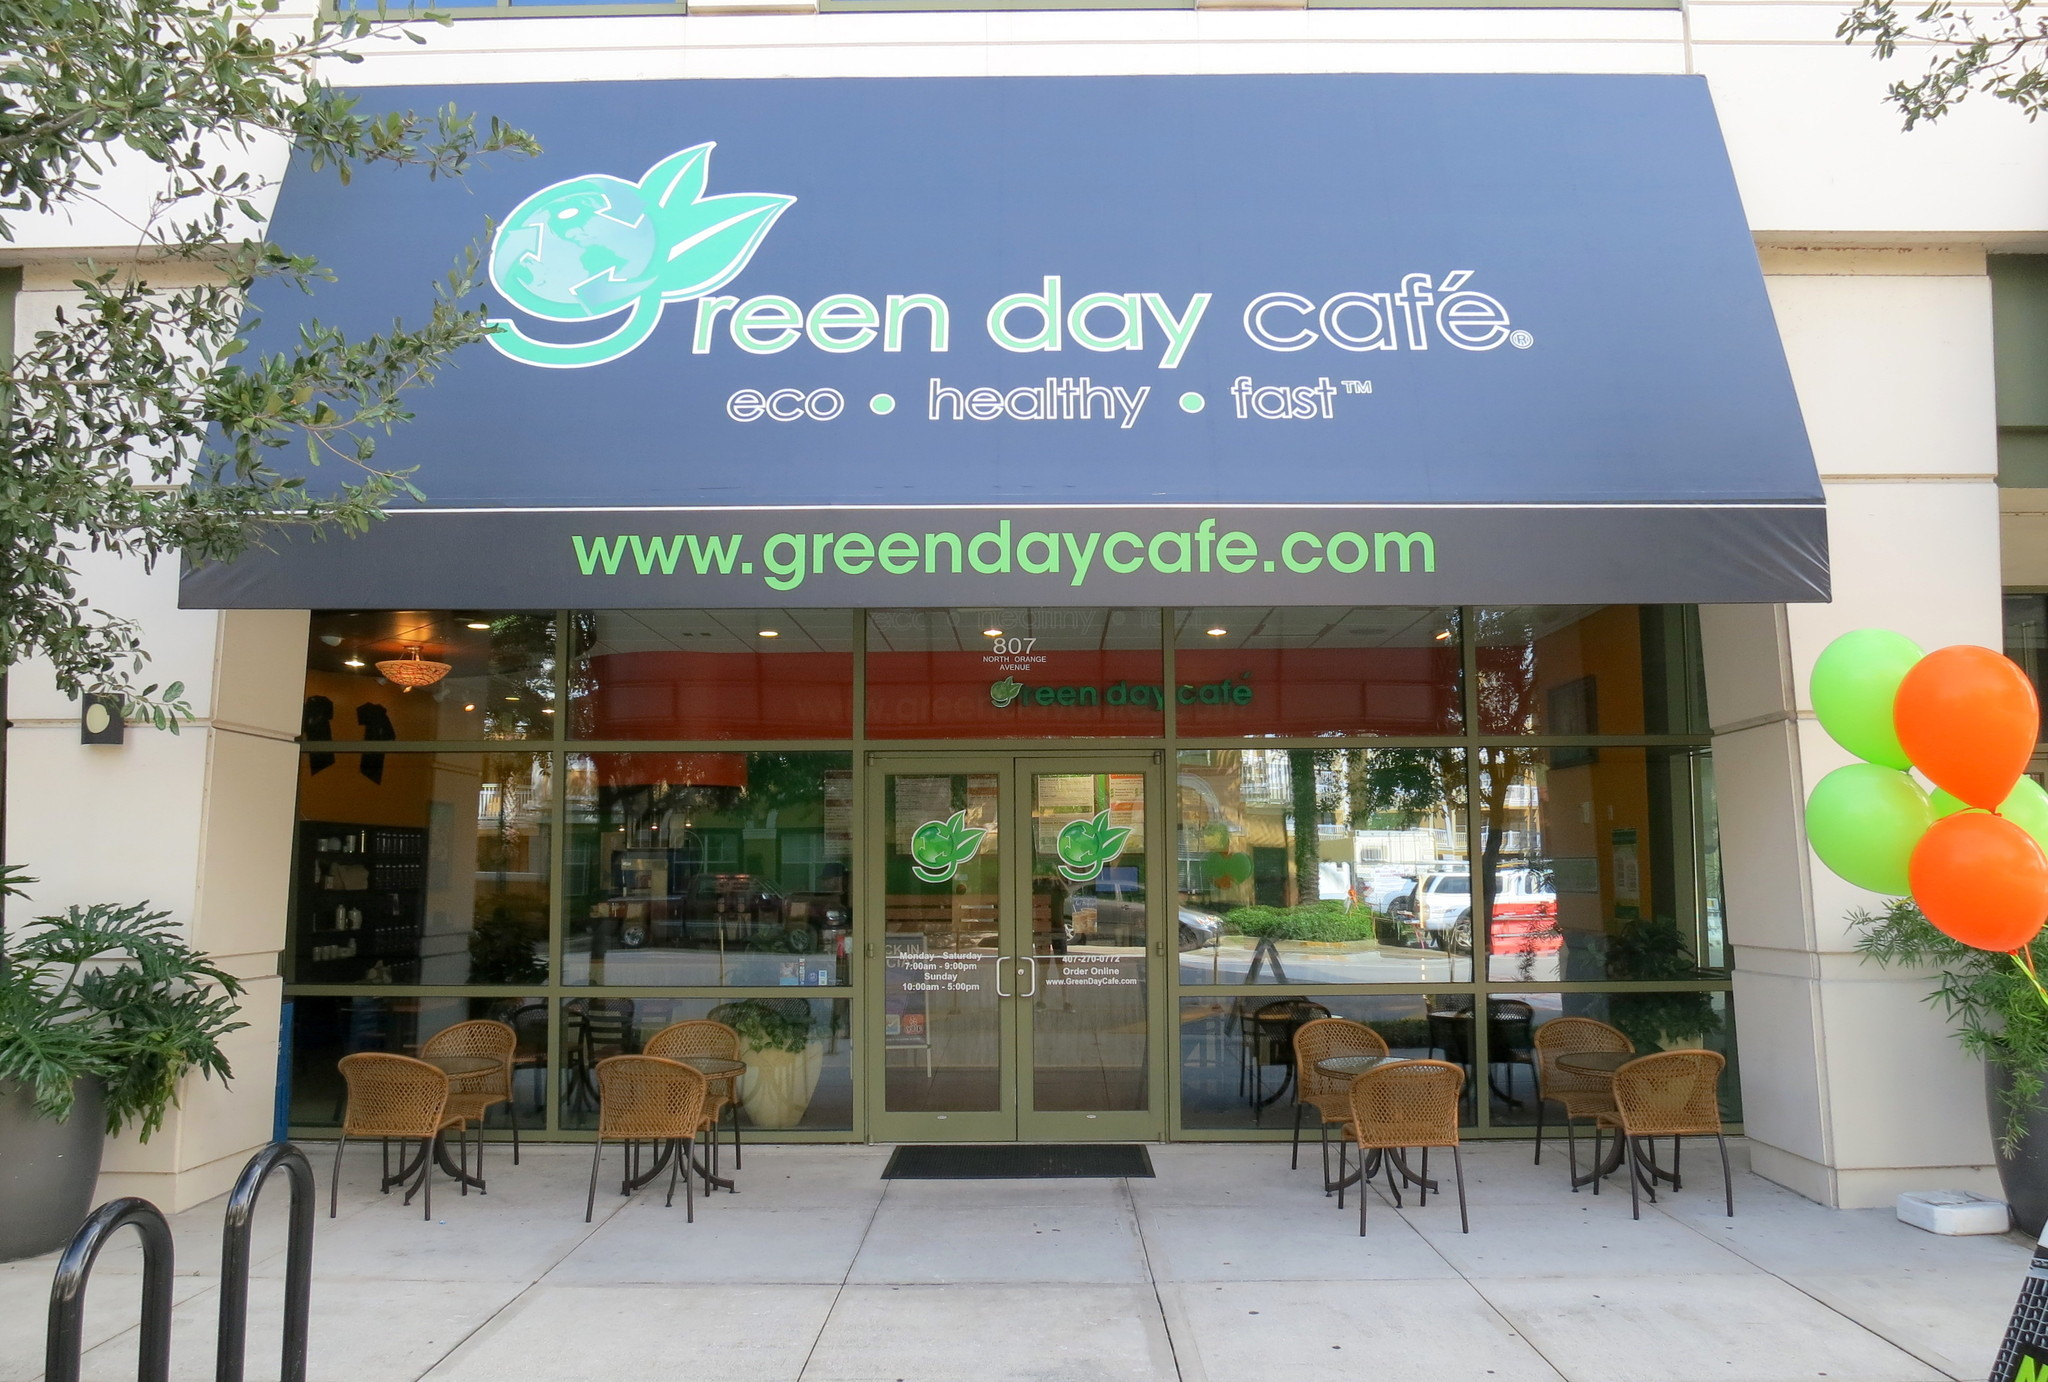 green day cafe opening in downtown orlando monday sept 22